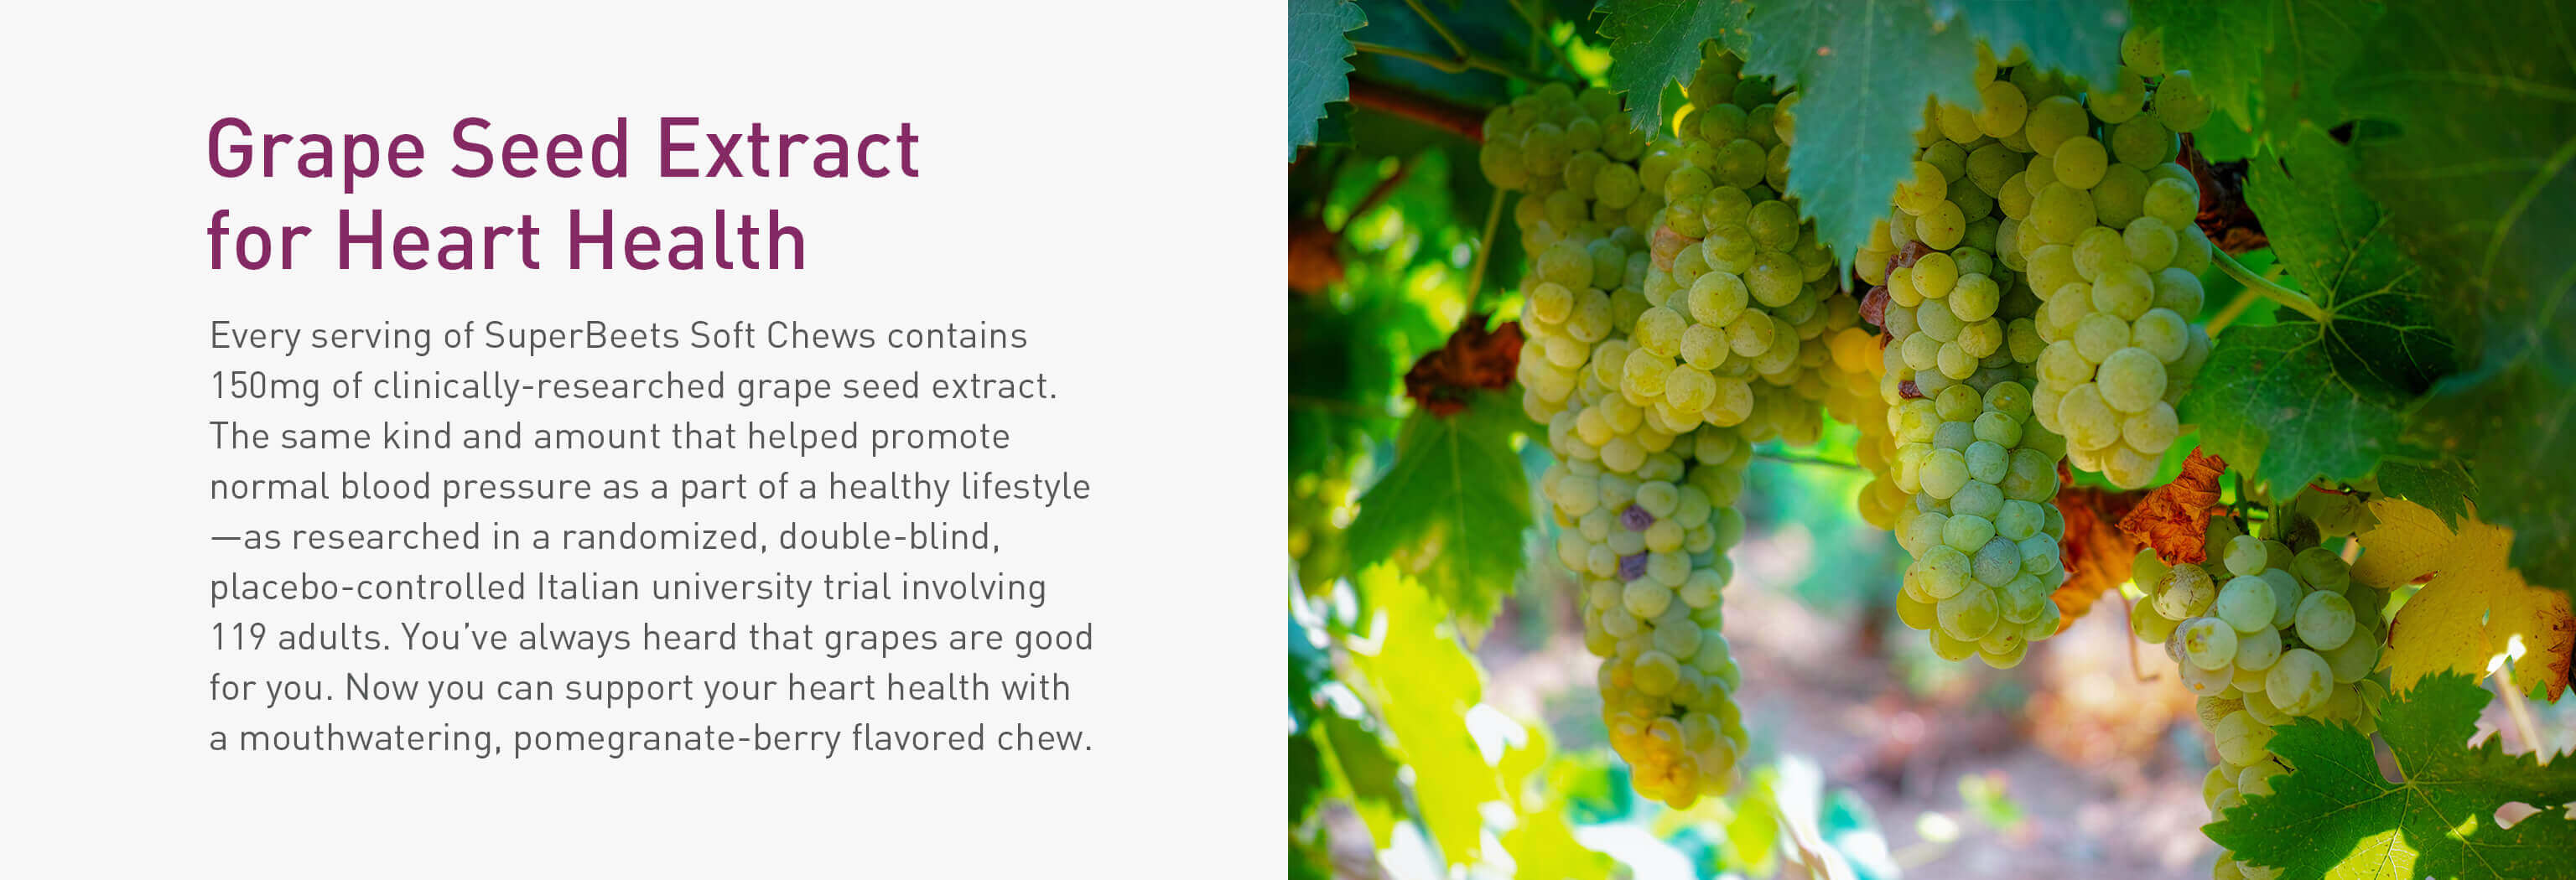 Grapes hanging from grapevine with description of grape seed extract for heart health